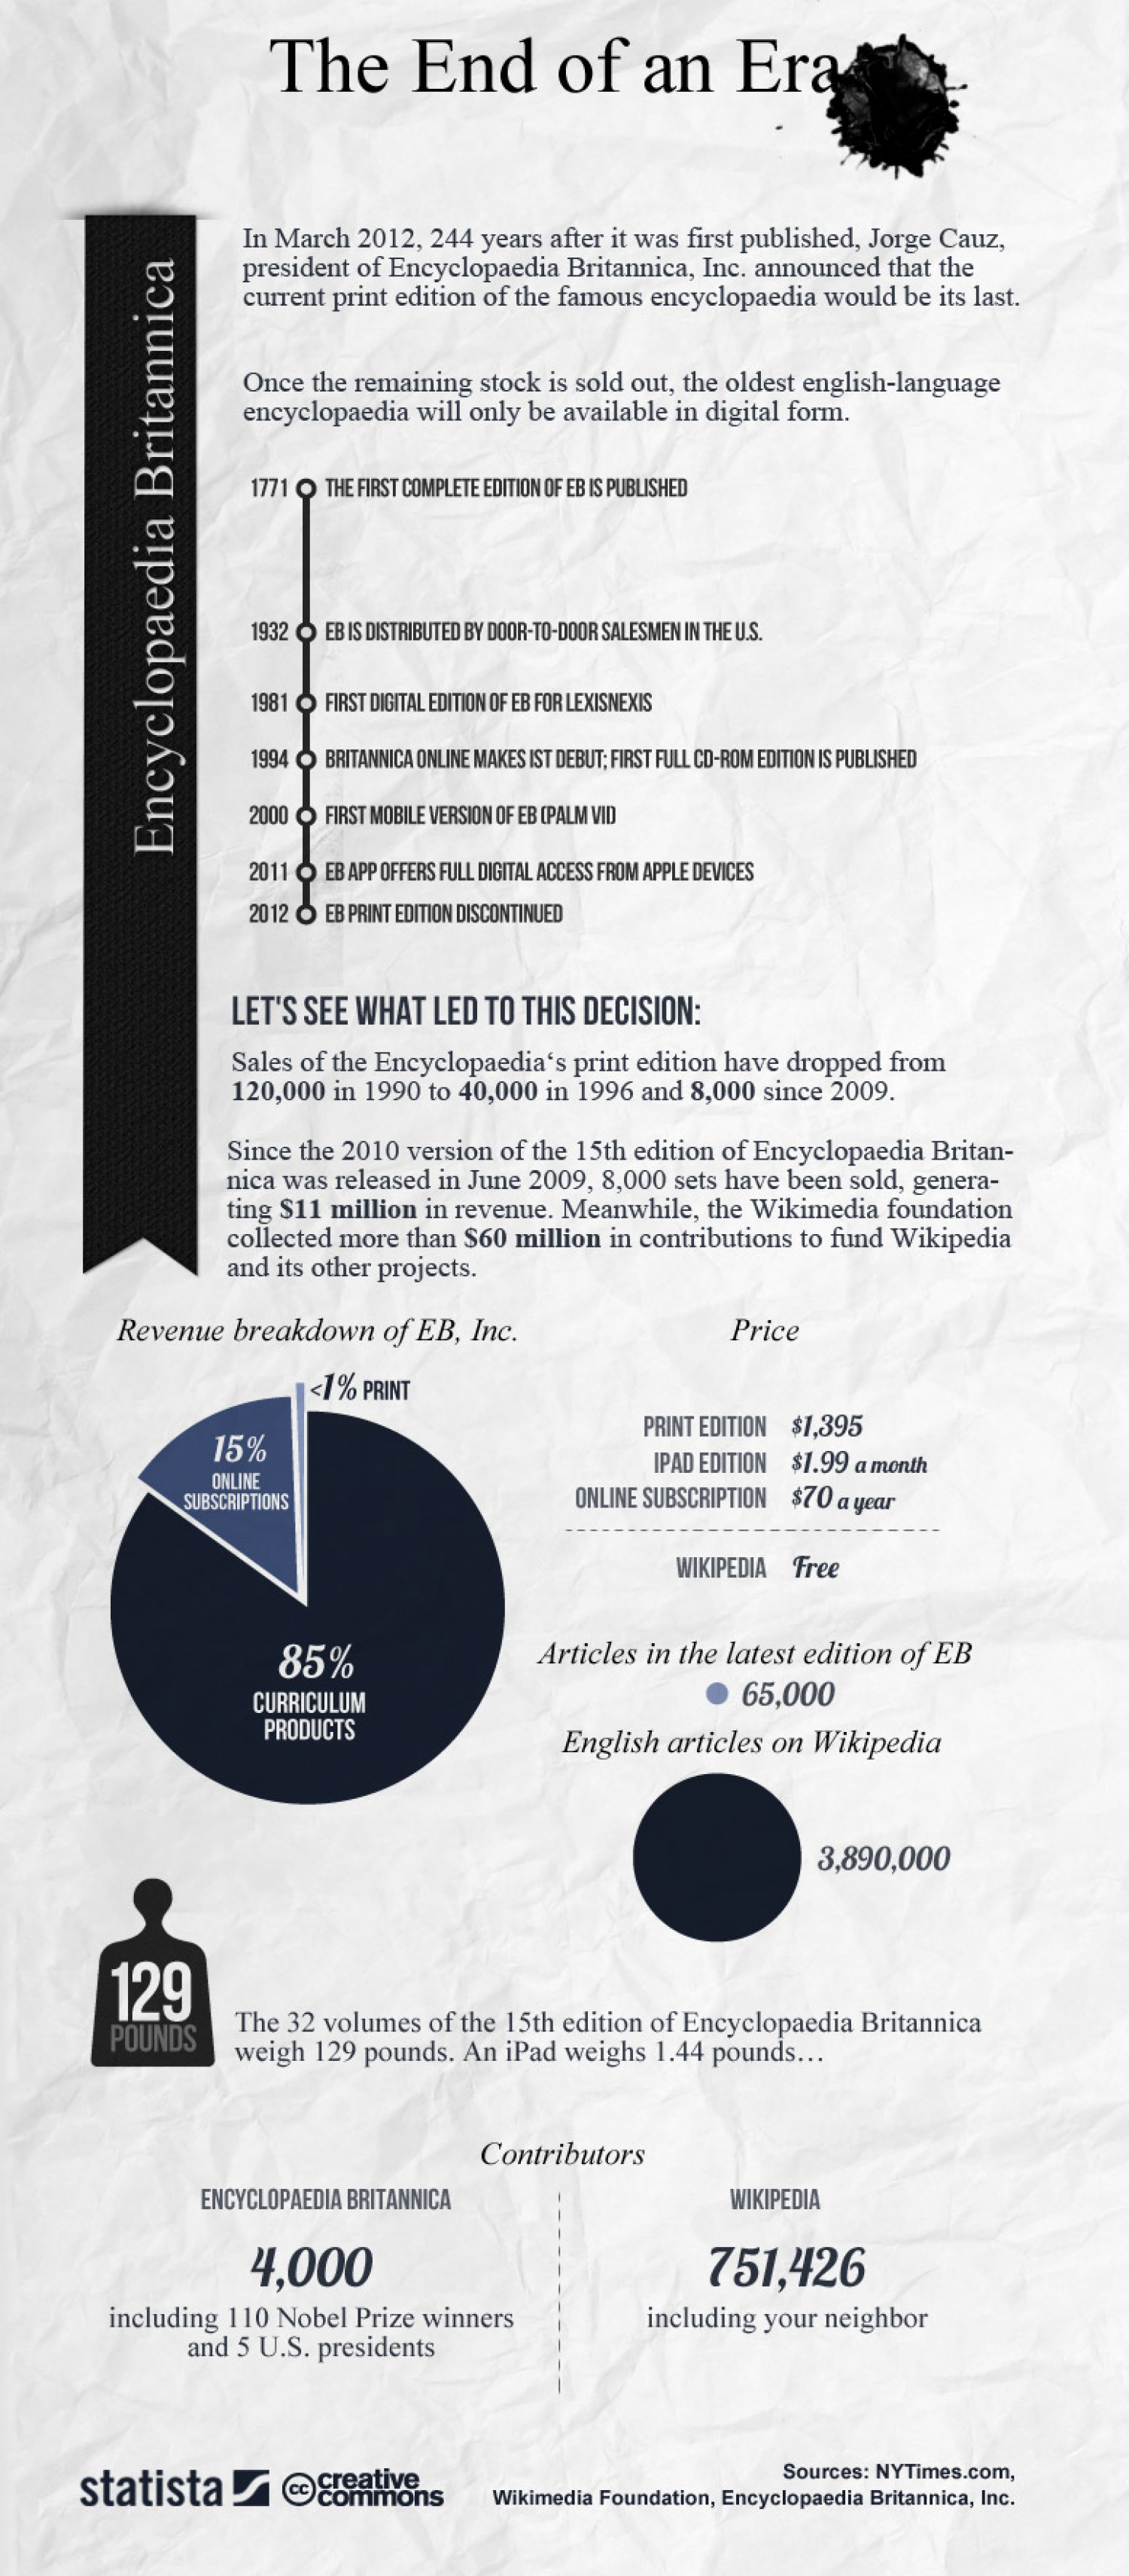 The End of an Era Infographic